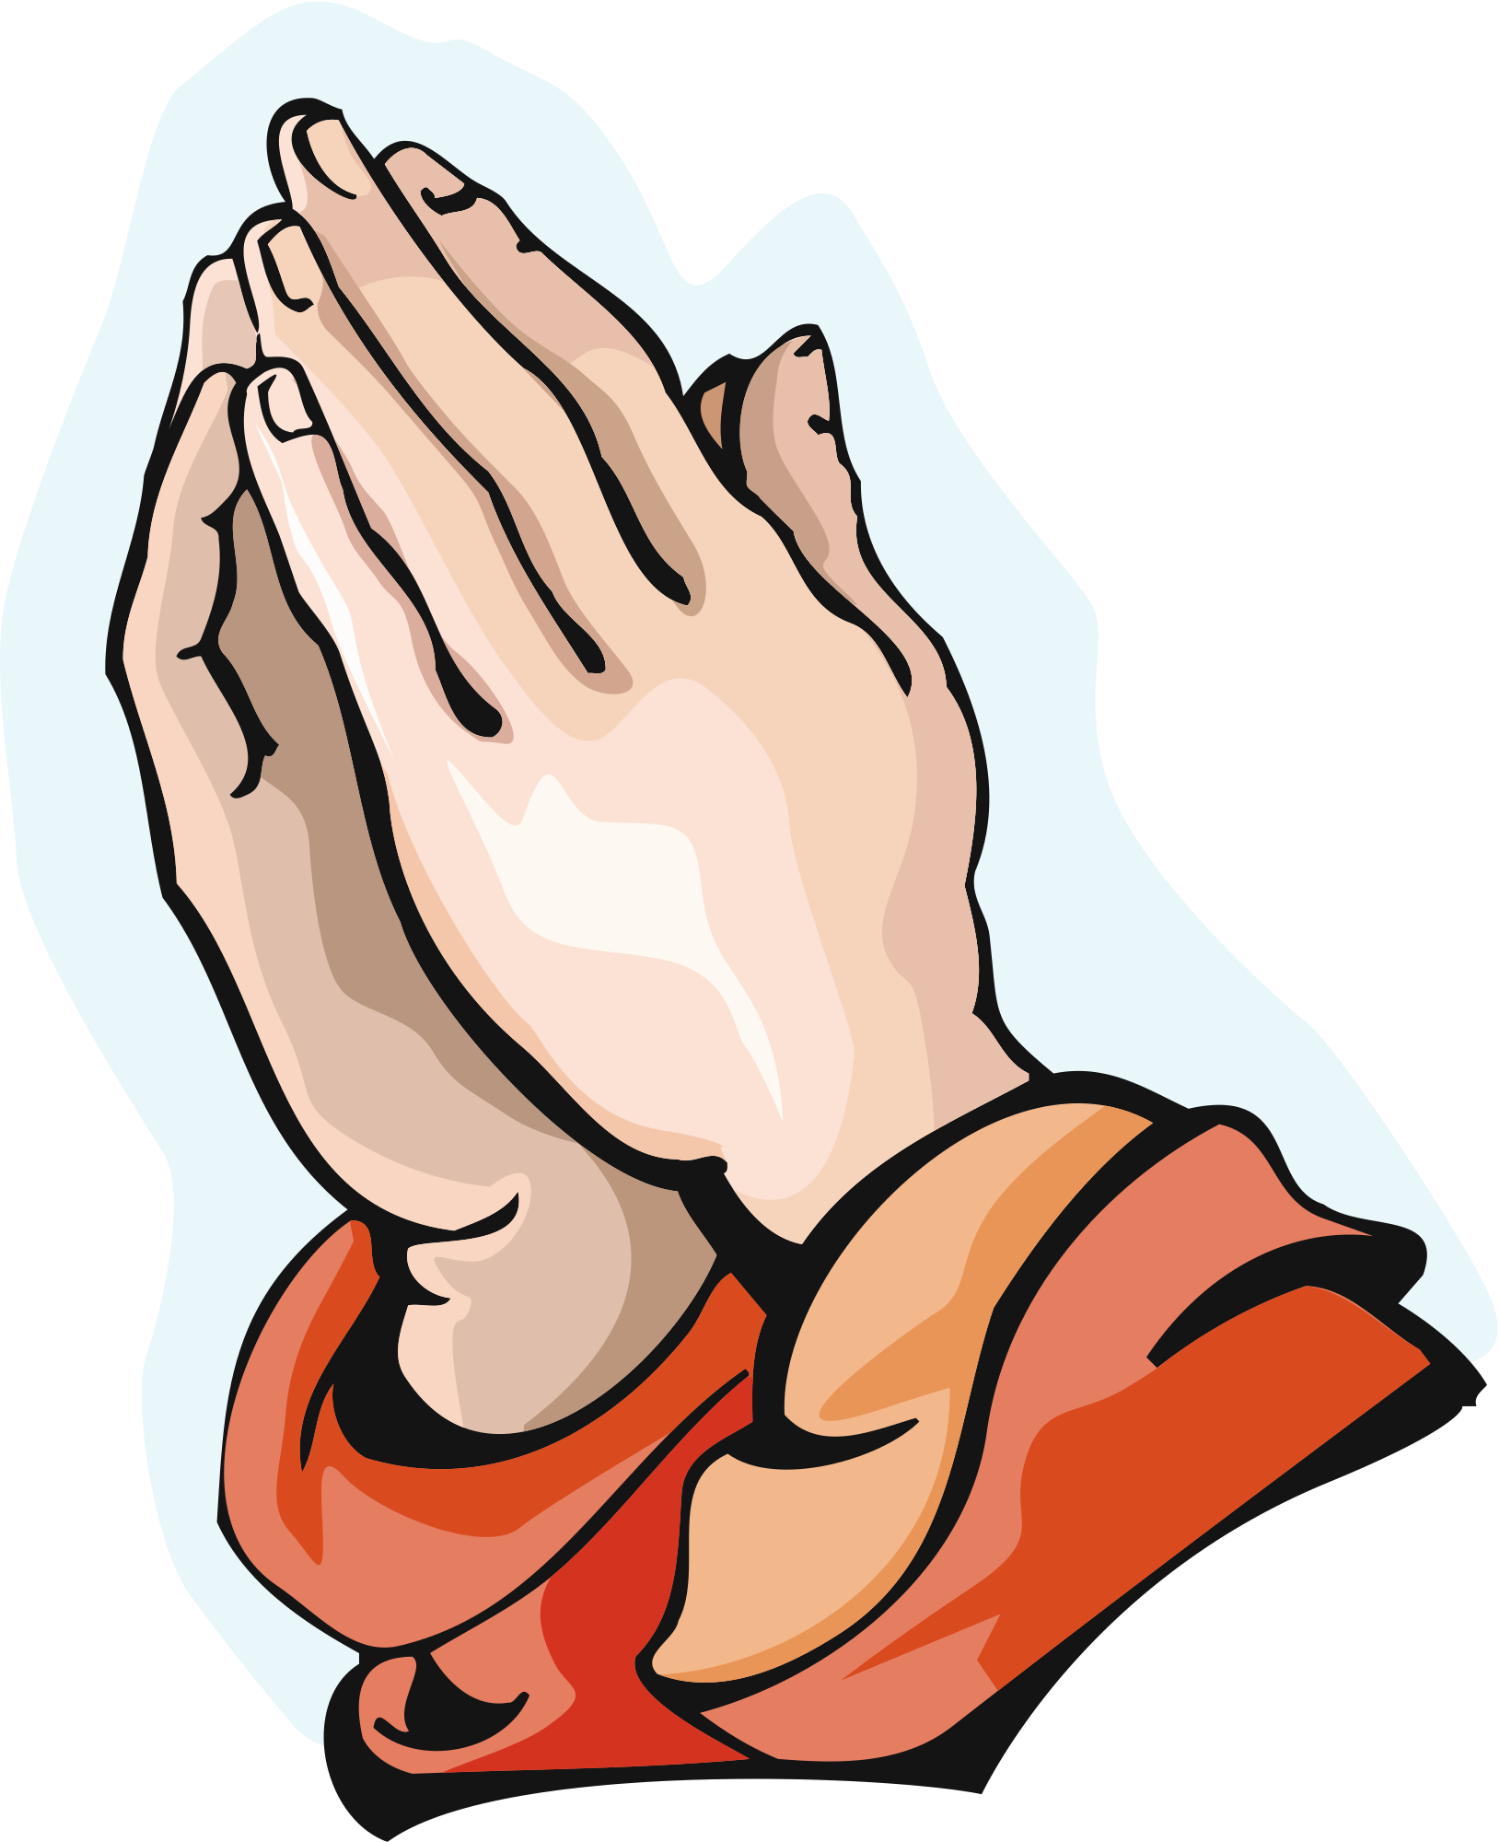 praying hands clipart cartoon prayer hands clipart lifestyle rh pinterest com praying hands clipart black and white praying hands clipart png